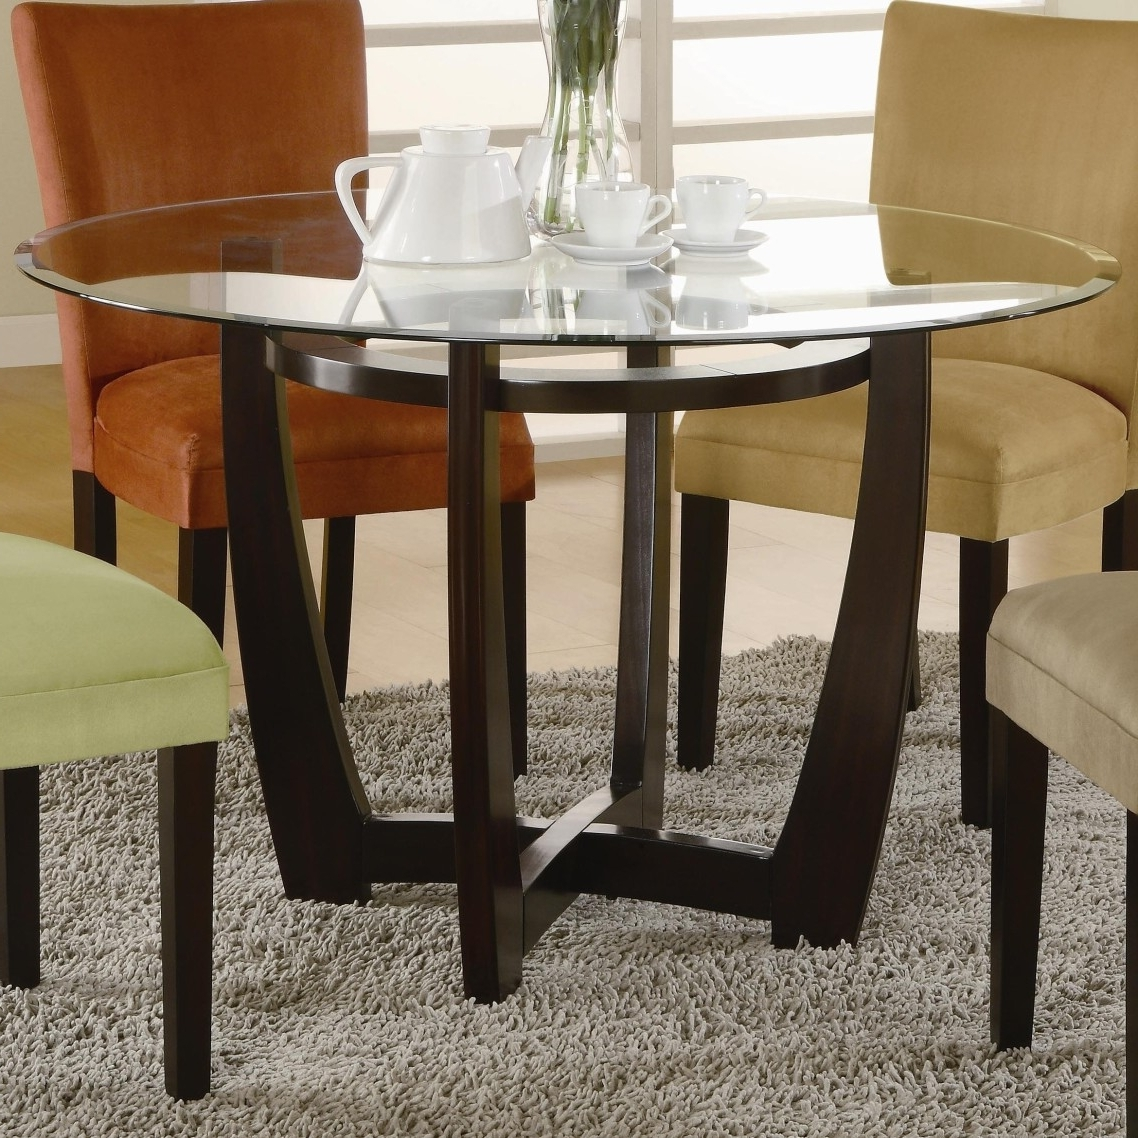 Well Known Curved Glass Dining Tables Intended For Curved Black Stained Oak Wood Legs Dining Table With Csrossed (View 24 of 25)